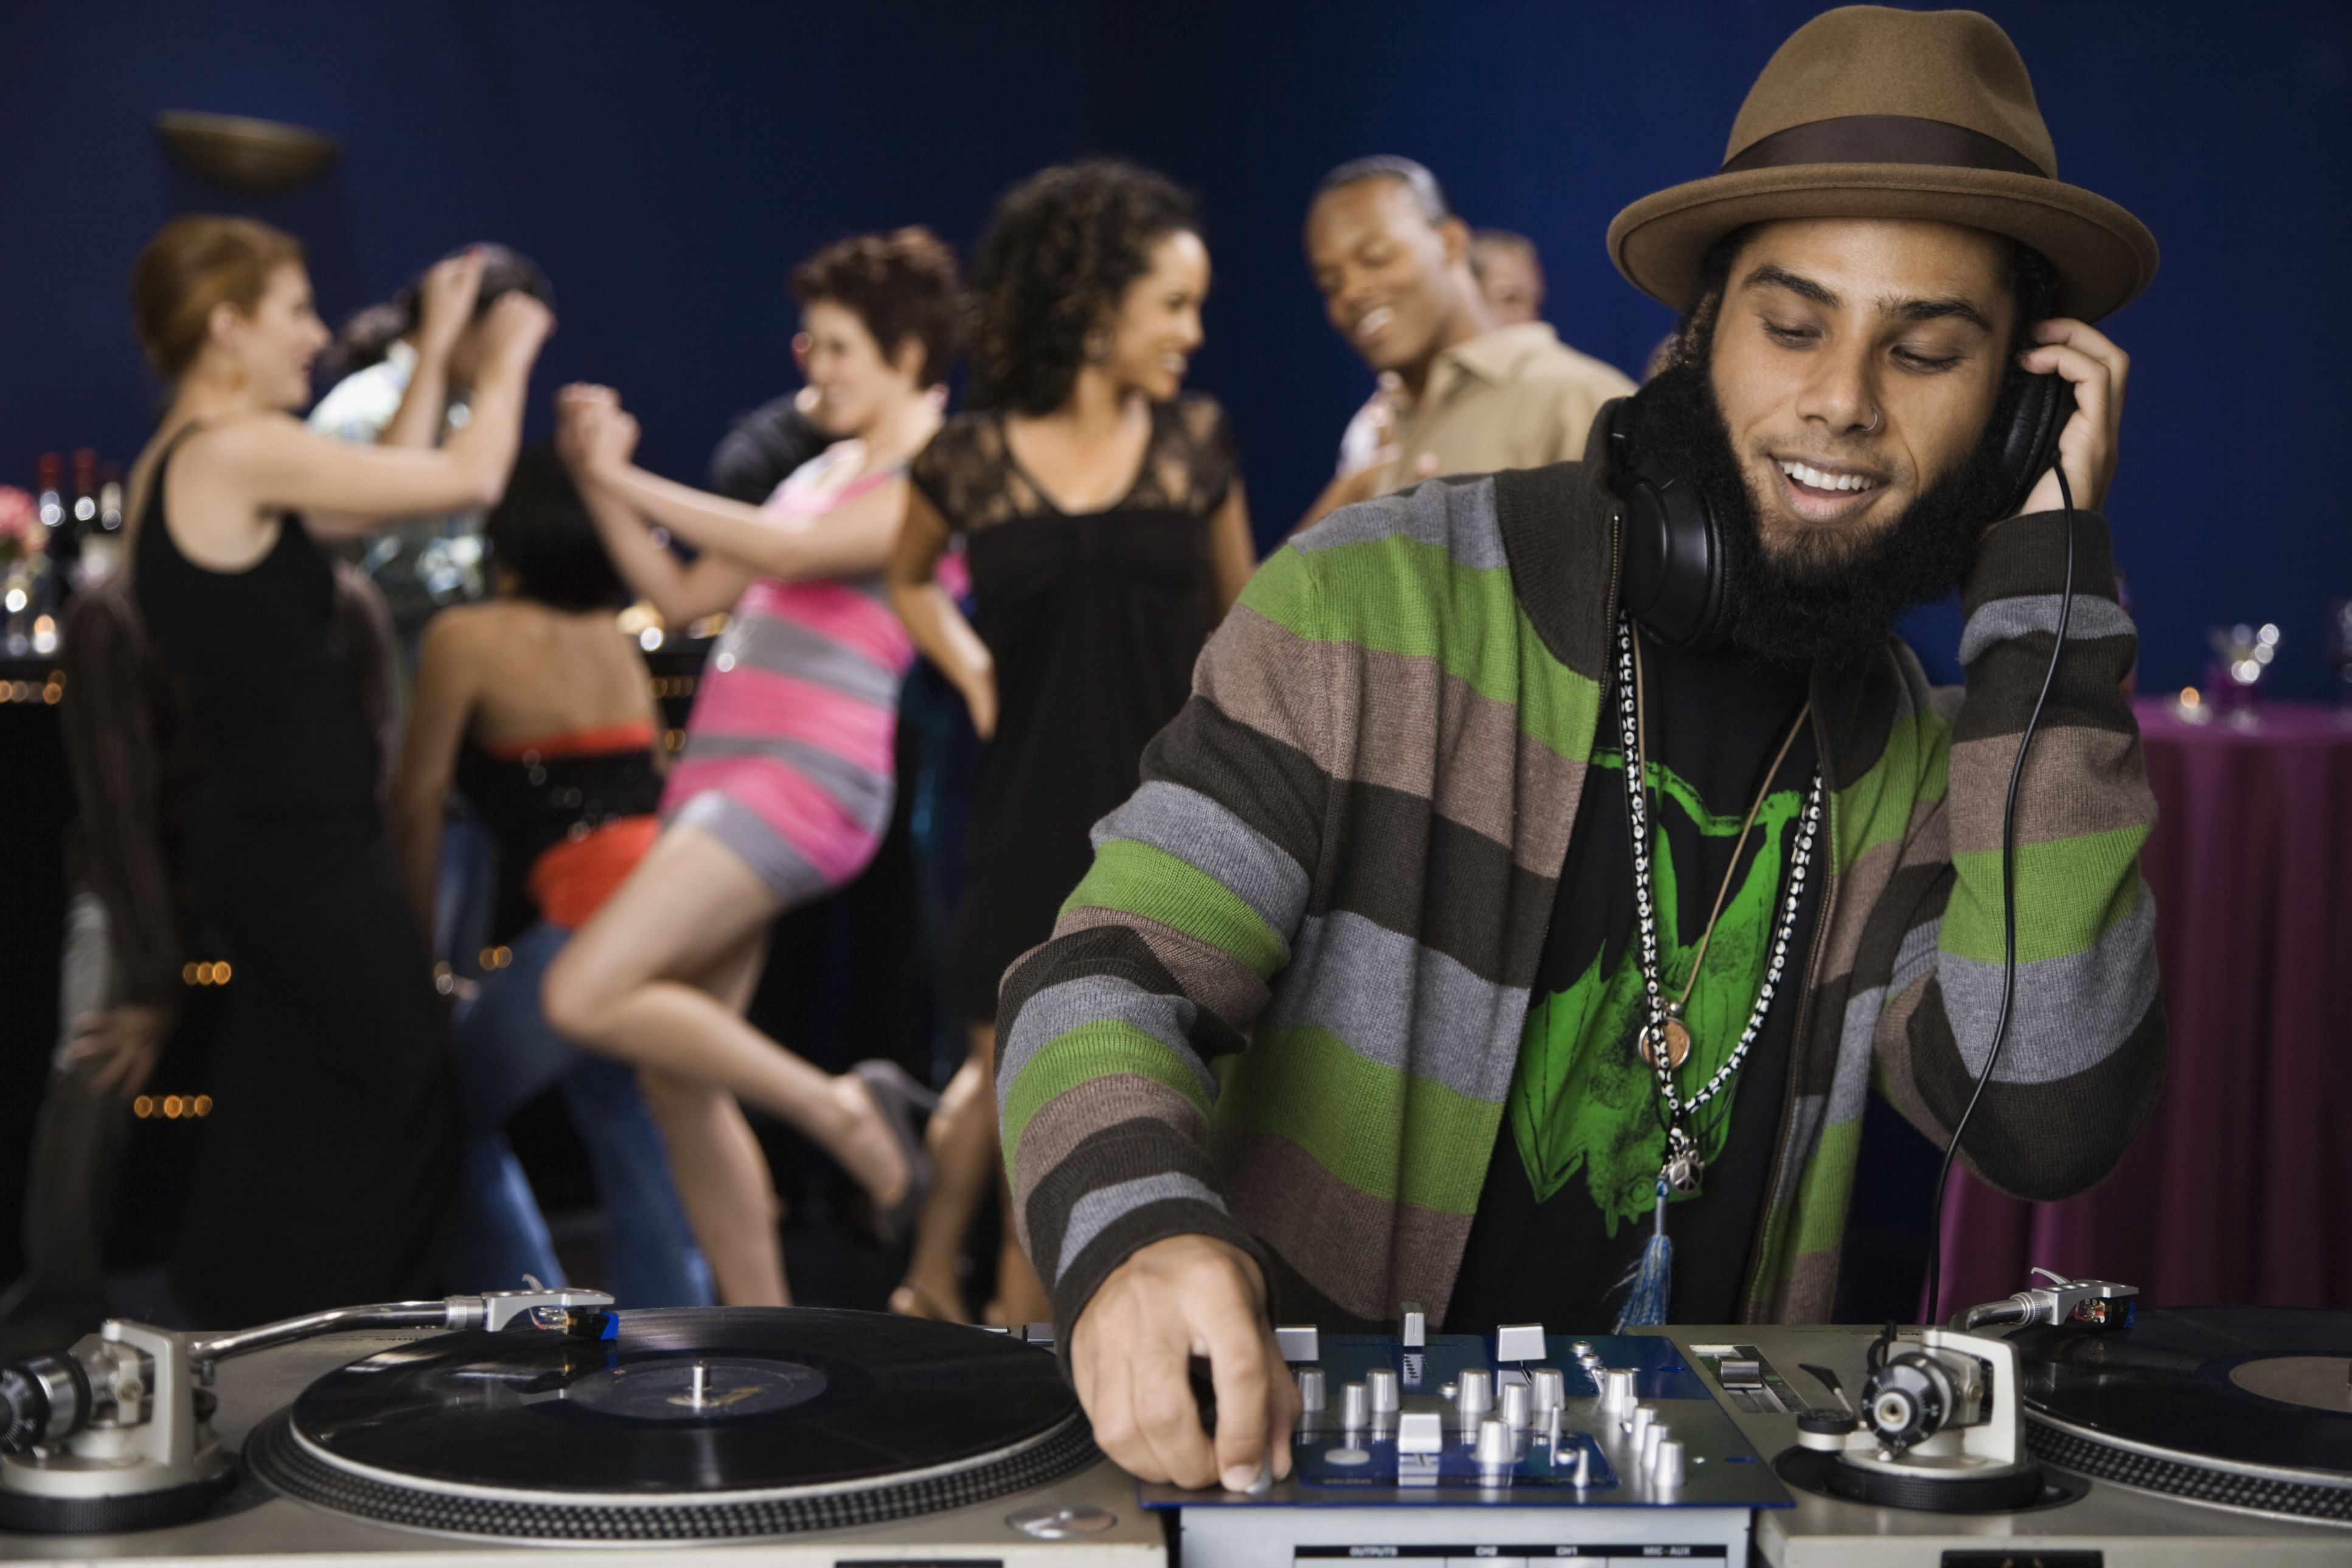 DJ spinning records at a dance party